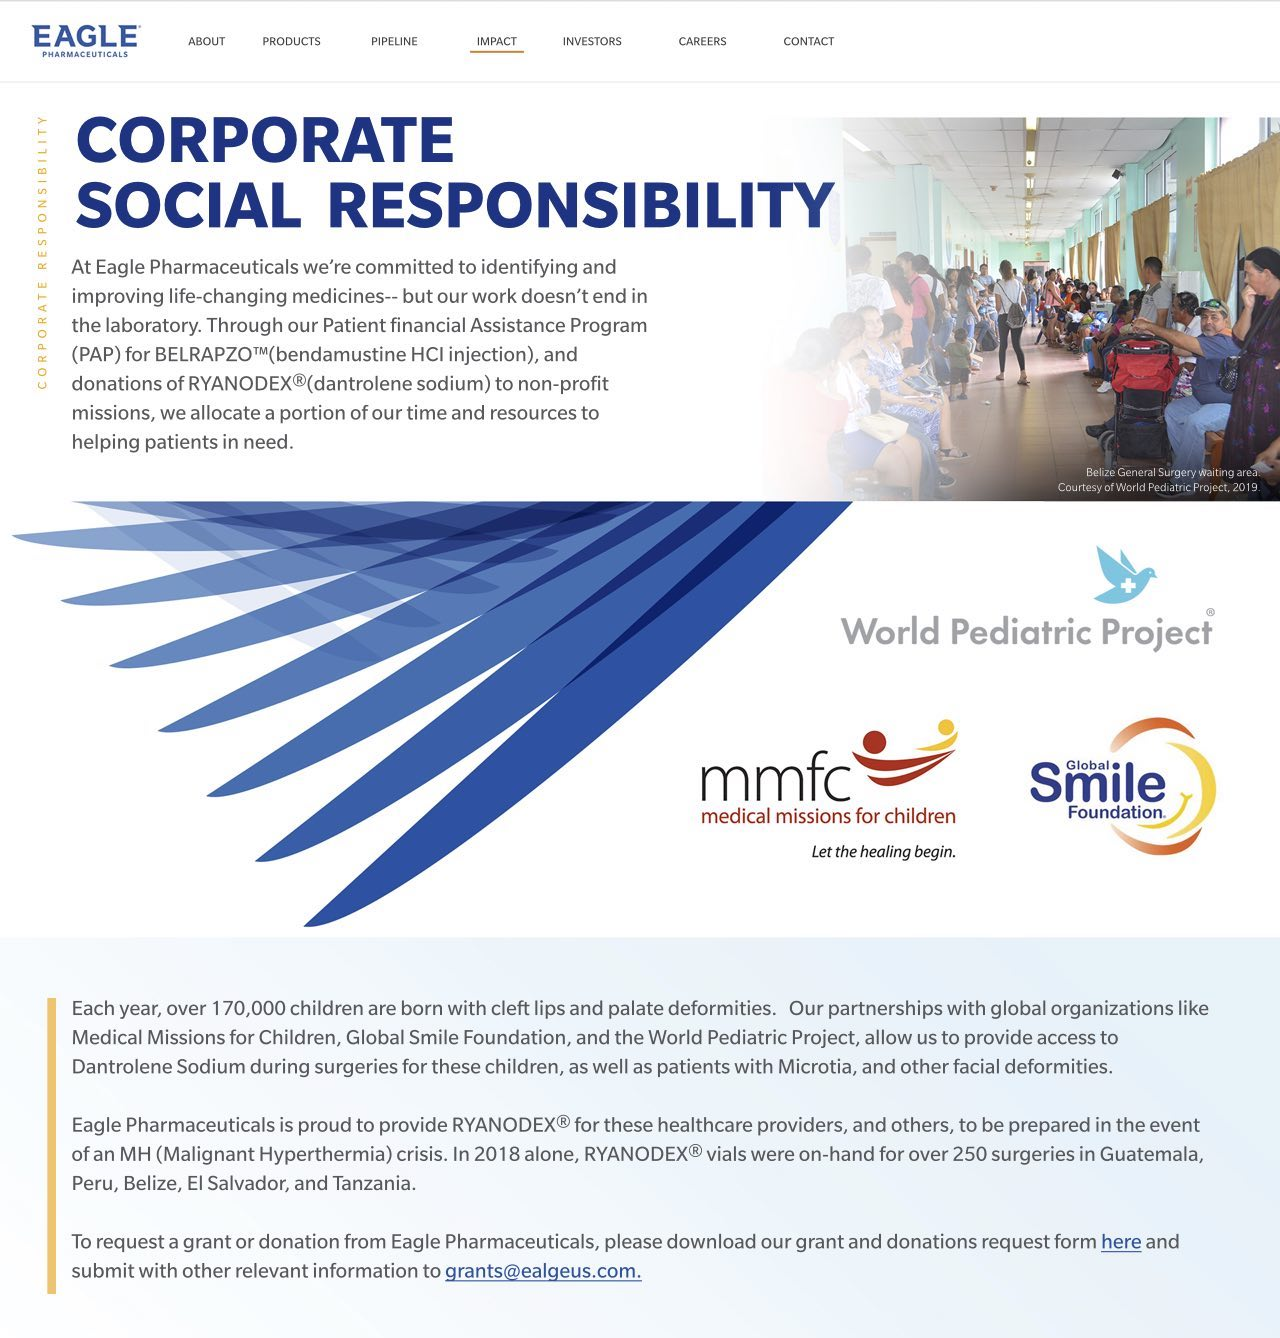 Eagle-Website-Corporate Responsibility_v3 July 1 2019